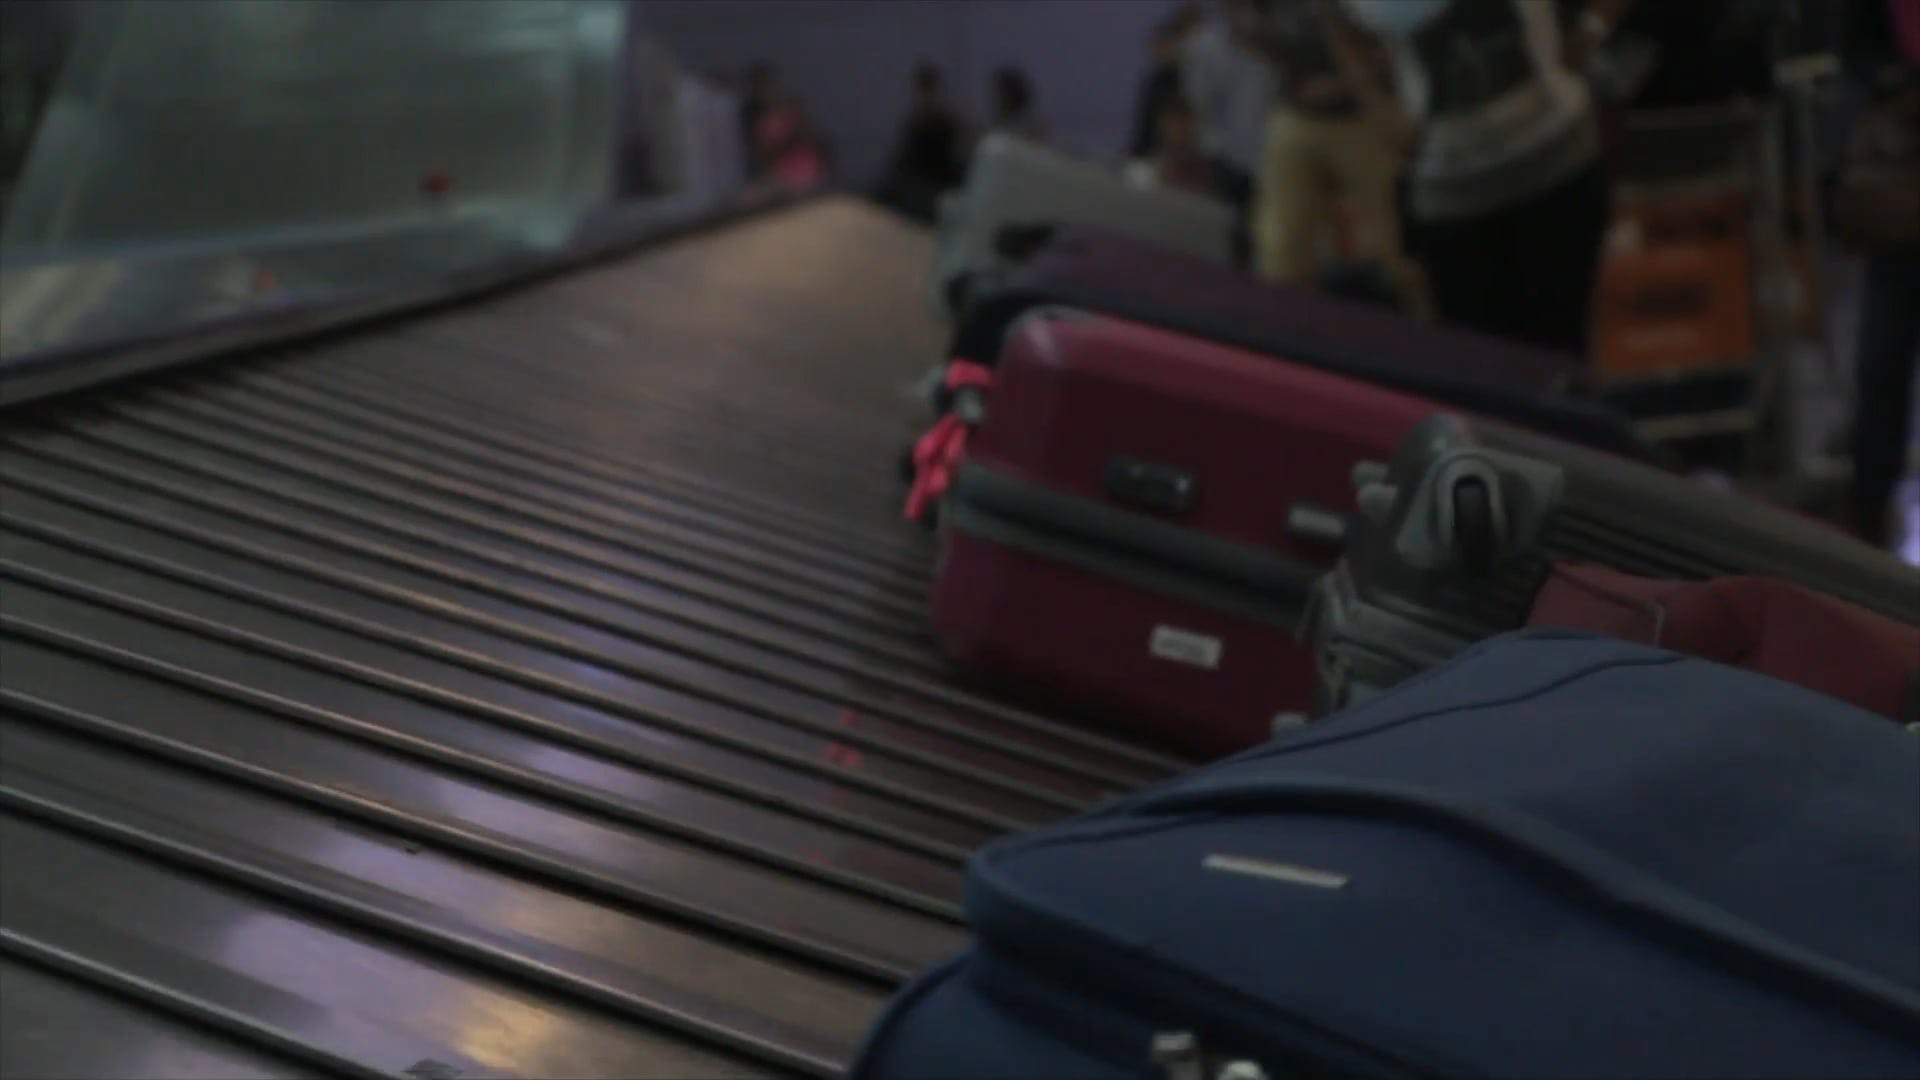 Luggage At The Conveyor Belt